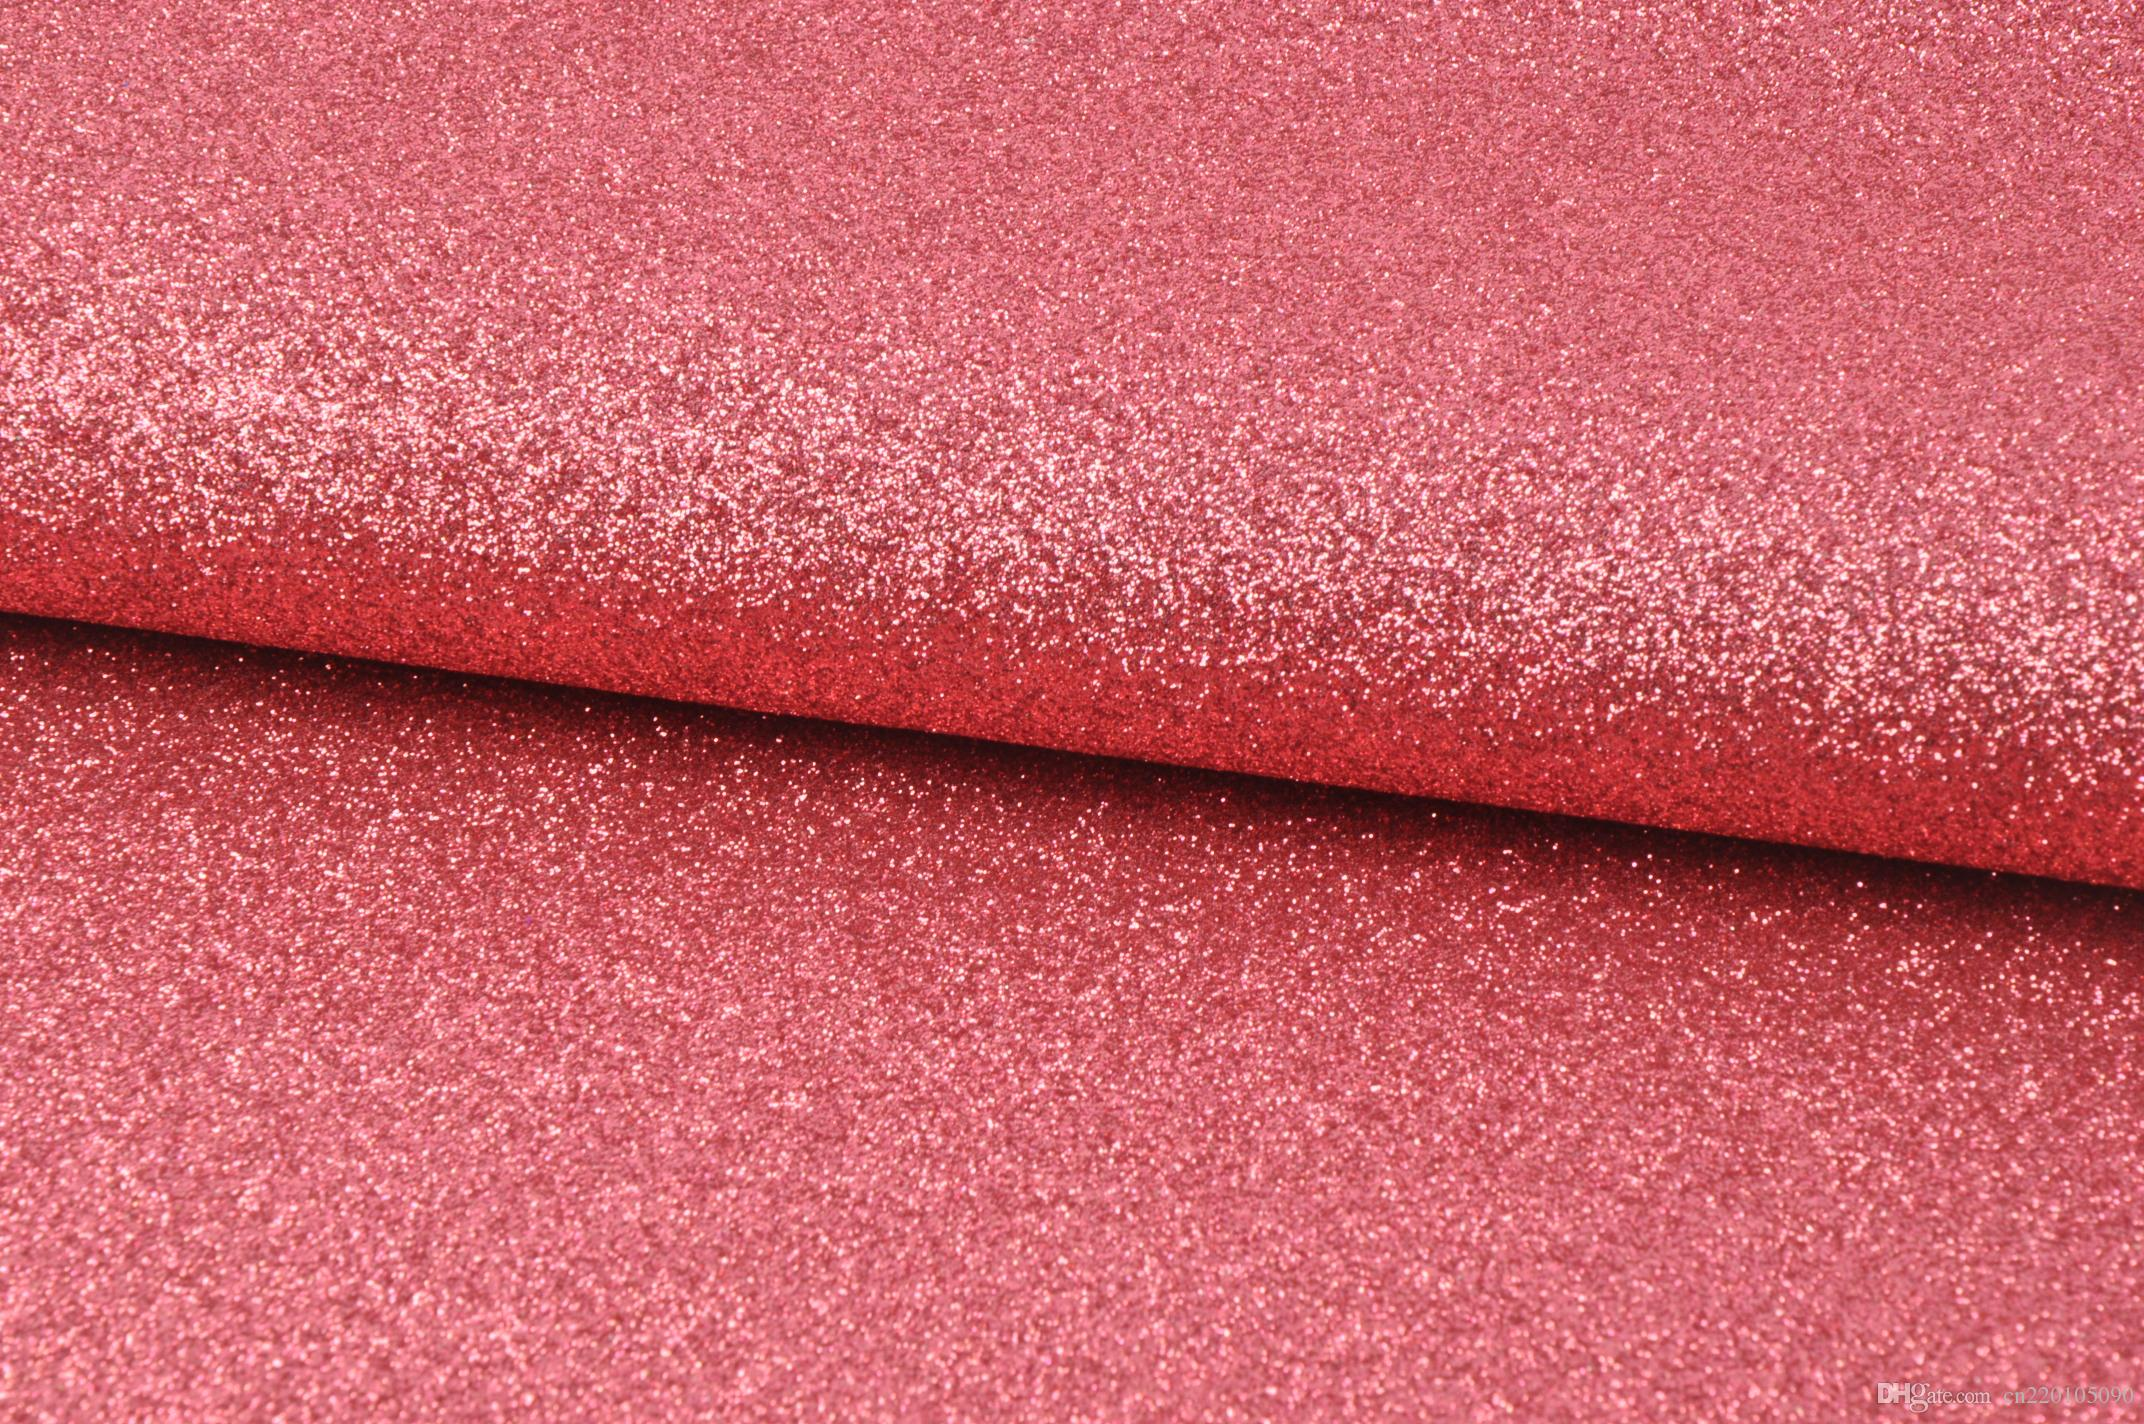 Jc Pack Glitter Vinyl Fabric Glitter Fabric For Wallpaper Glitter